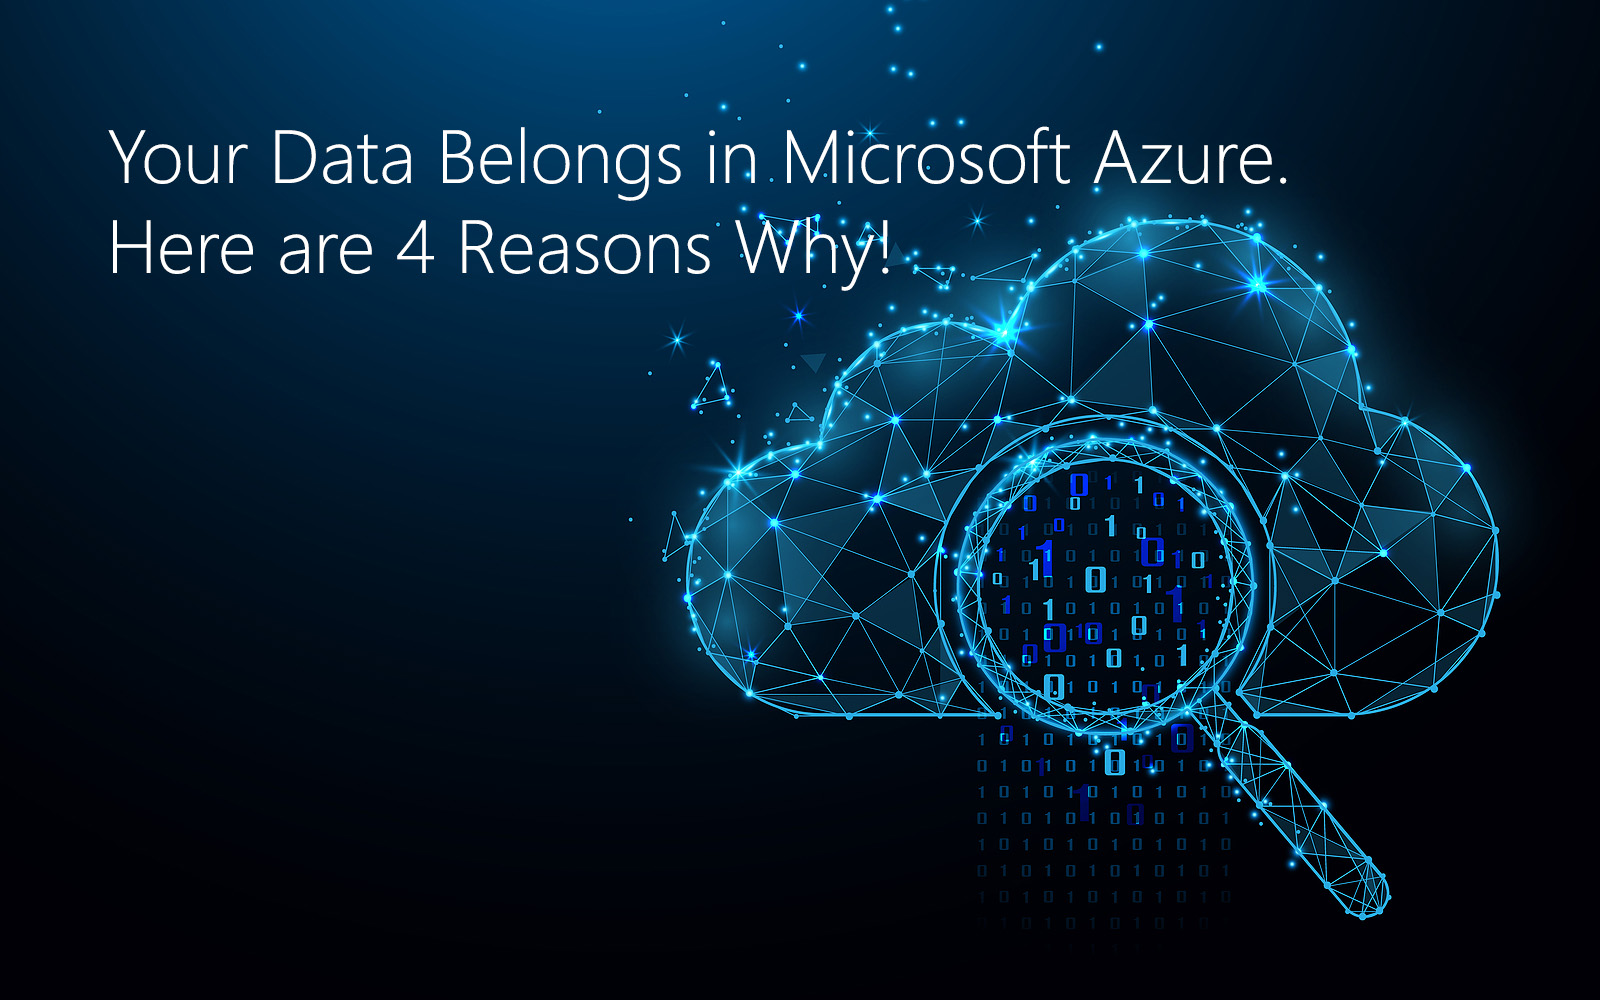 TMC-blog-your-data-belongs-in-microsoft-azure.-here-are-4-reasons-why